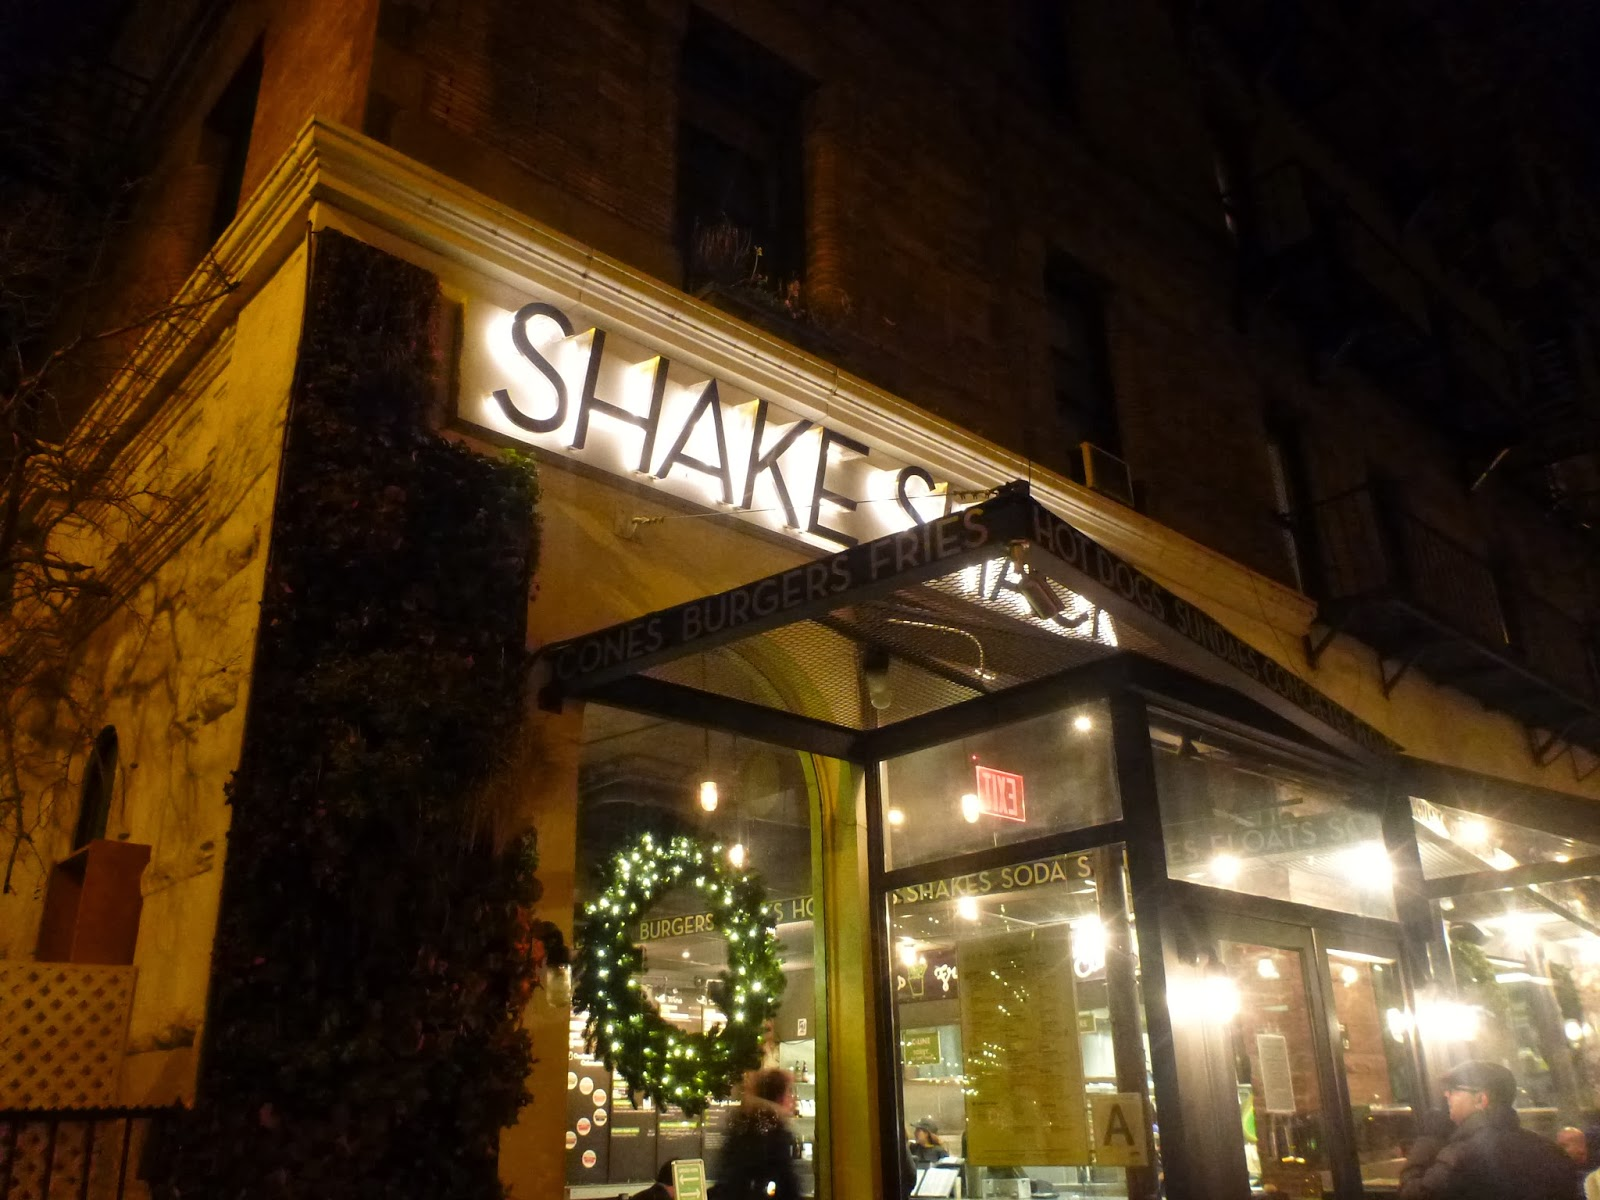 Around the world with Rebecca: Shake Shack, Upper West Side, NYC